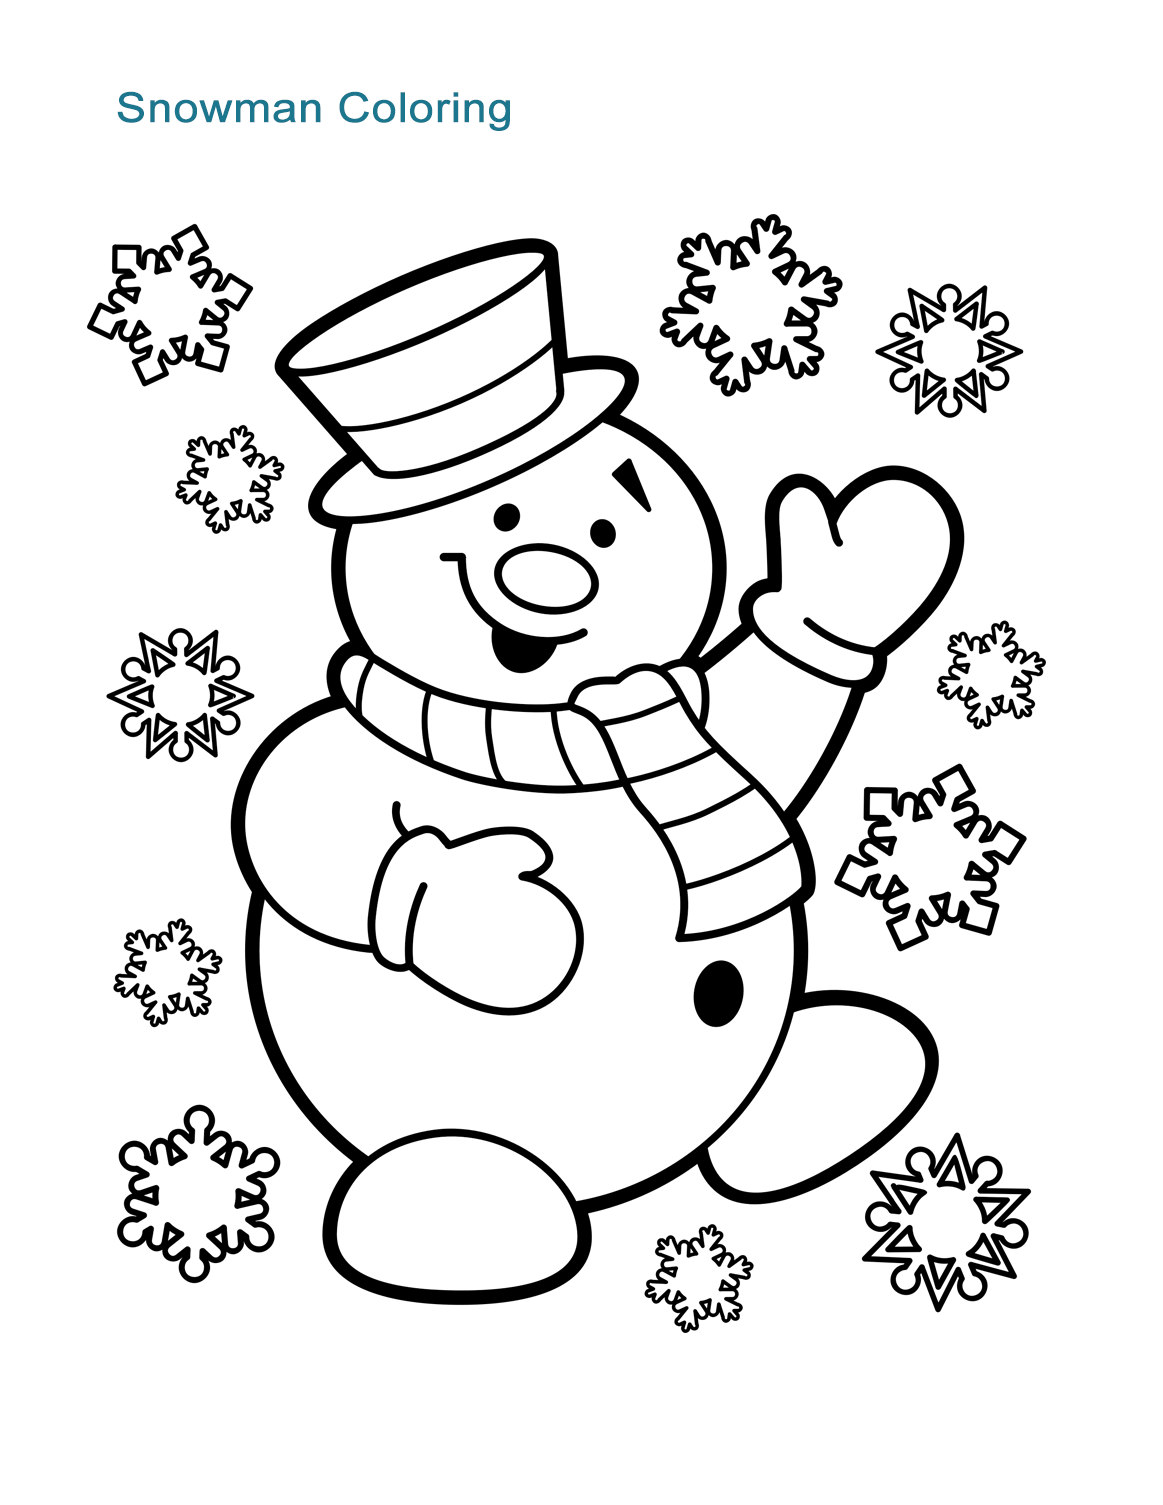 10 Christmas Coloring Worksheets For All Ages - ALL ESL